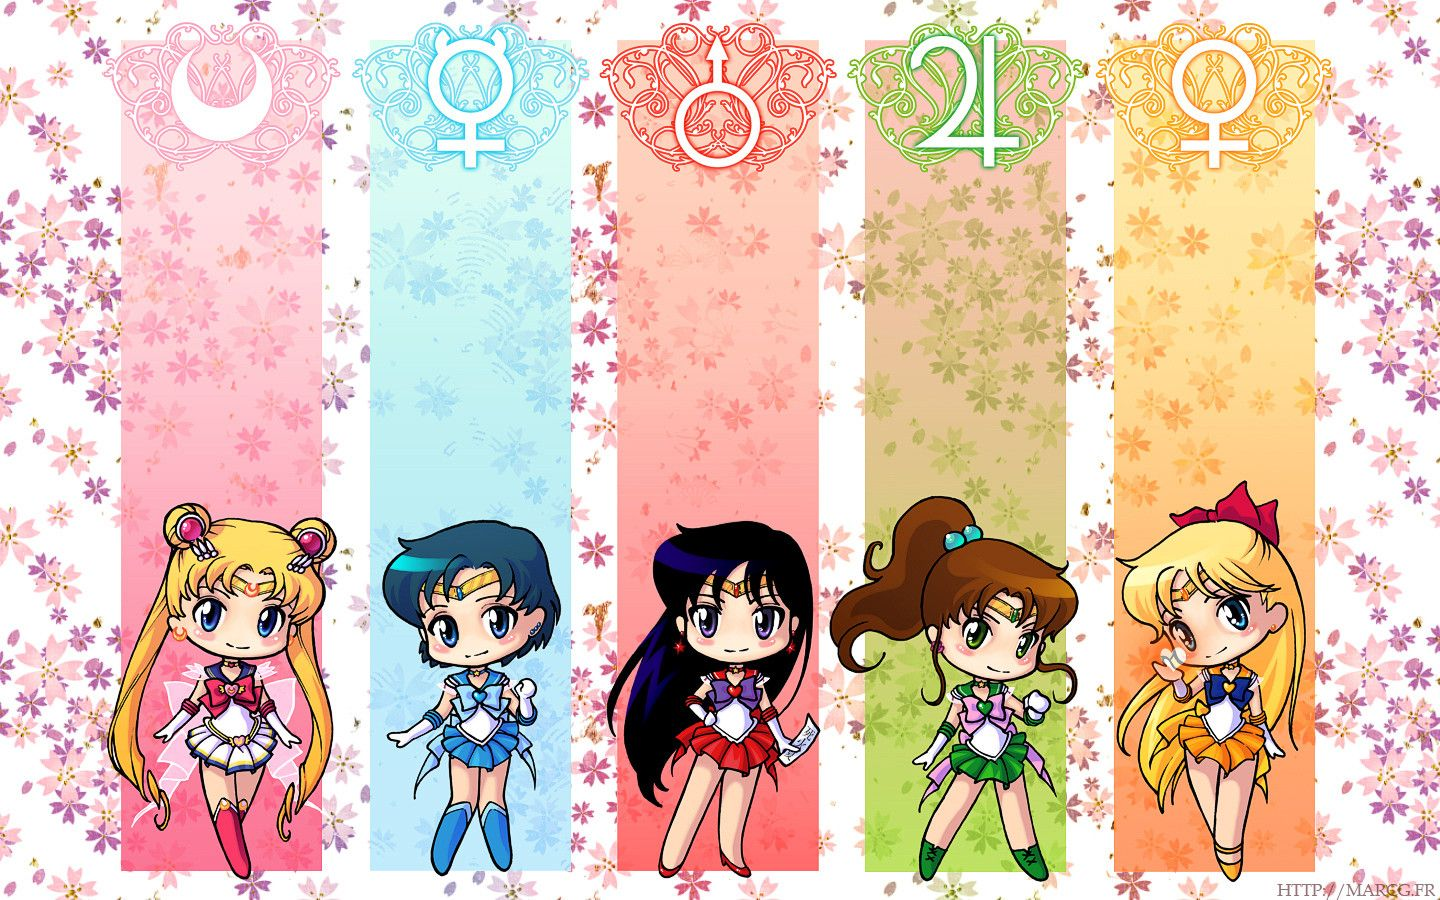 1440x900 Anime Cute Sailor Moon Wallpapers | wallpaper.wiki